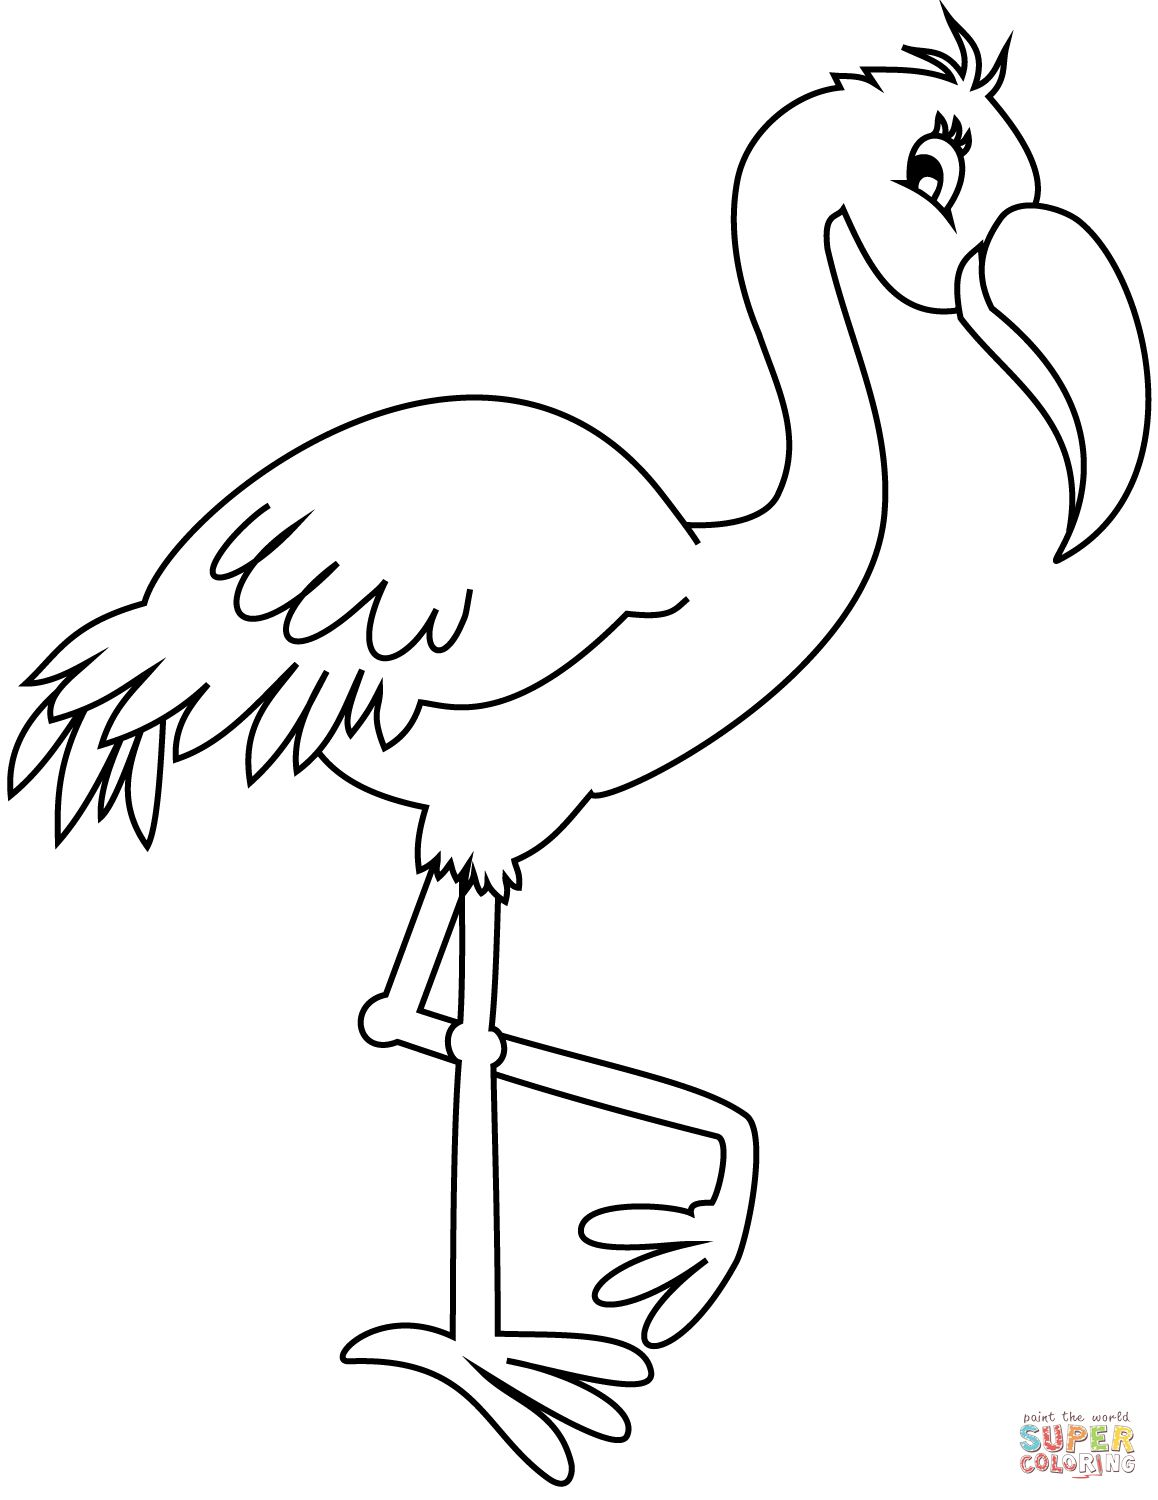 Flamingo Coloring Pages Flamingo Coloring Page Free Printable